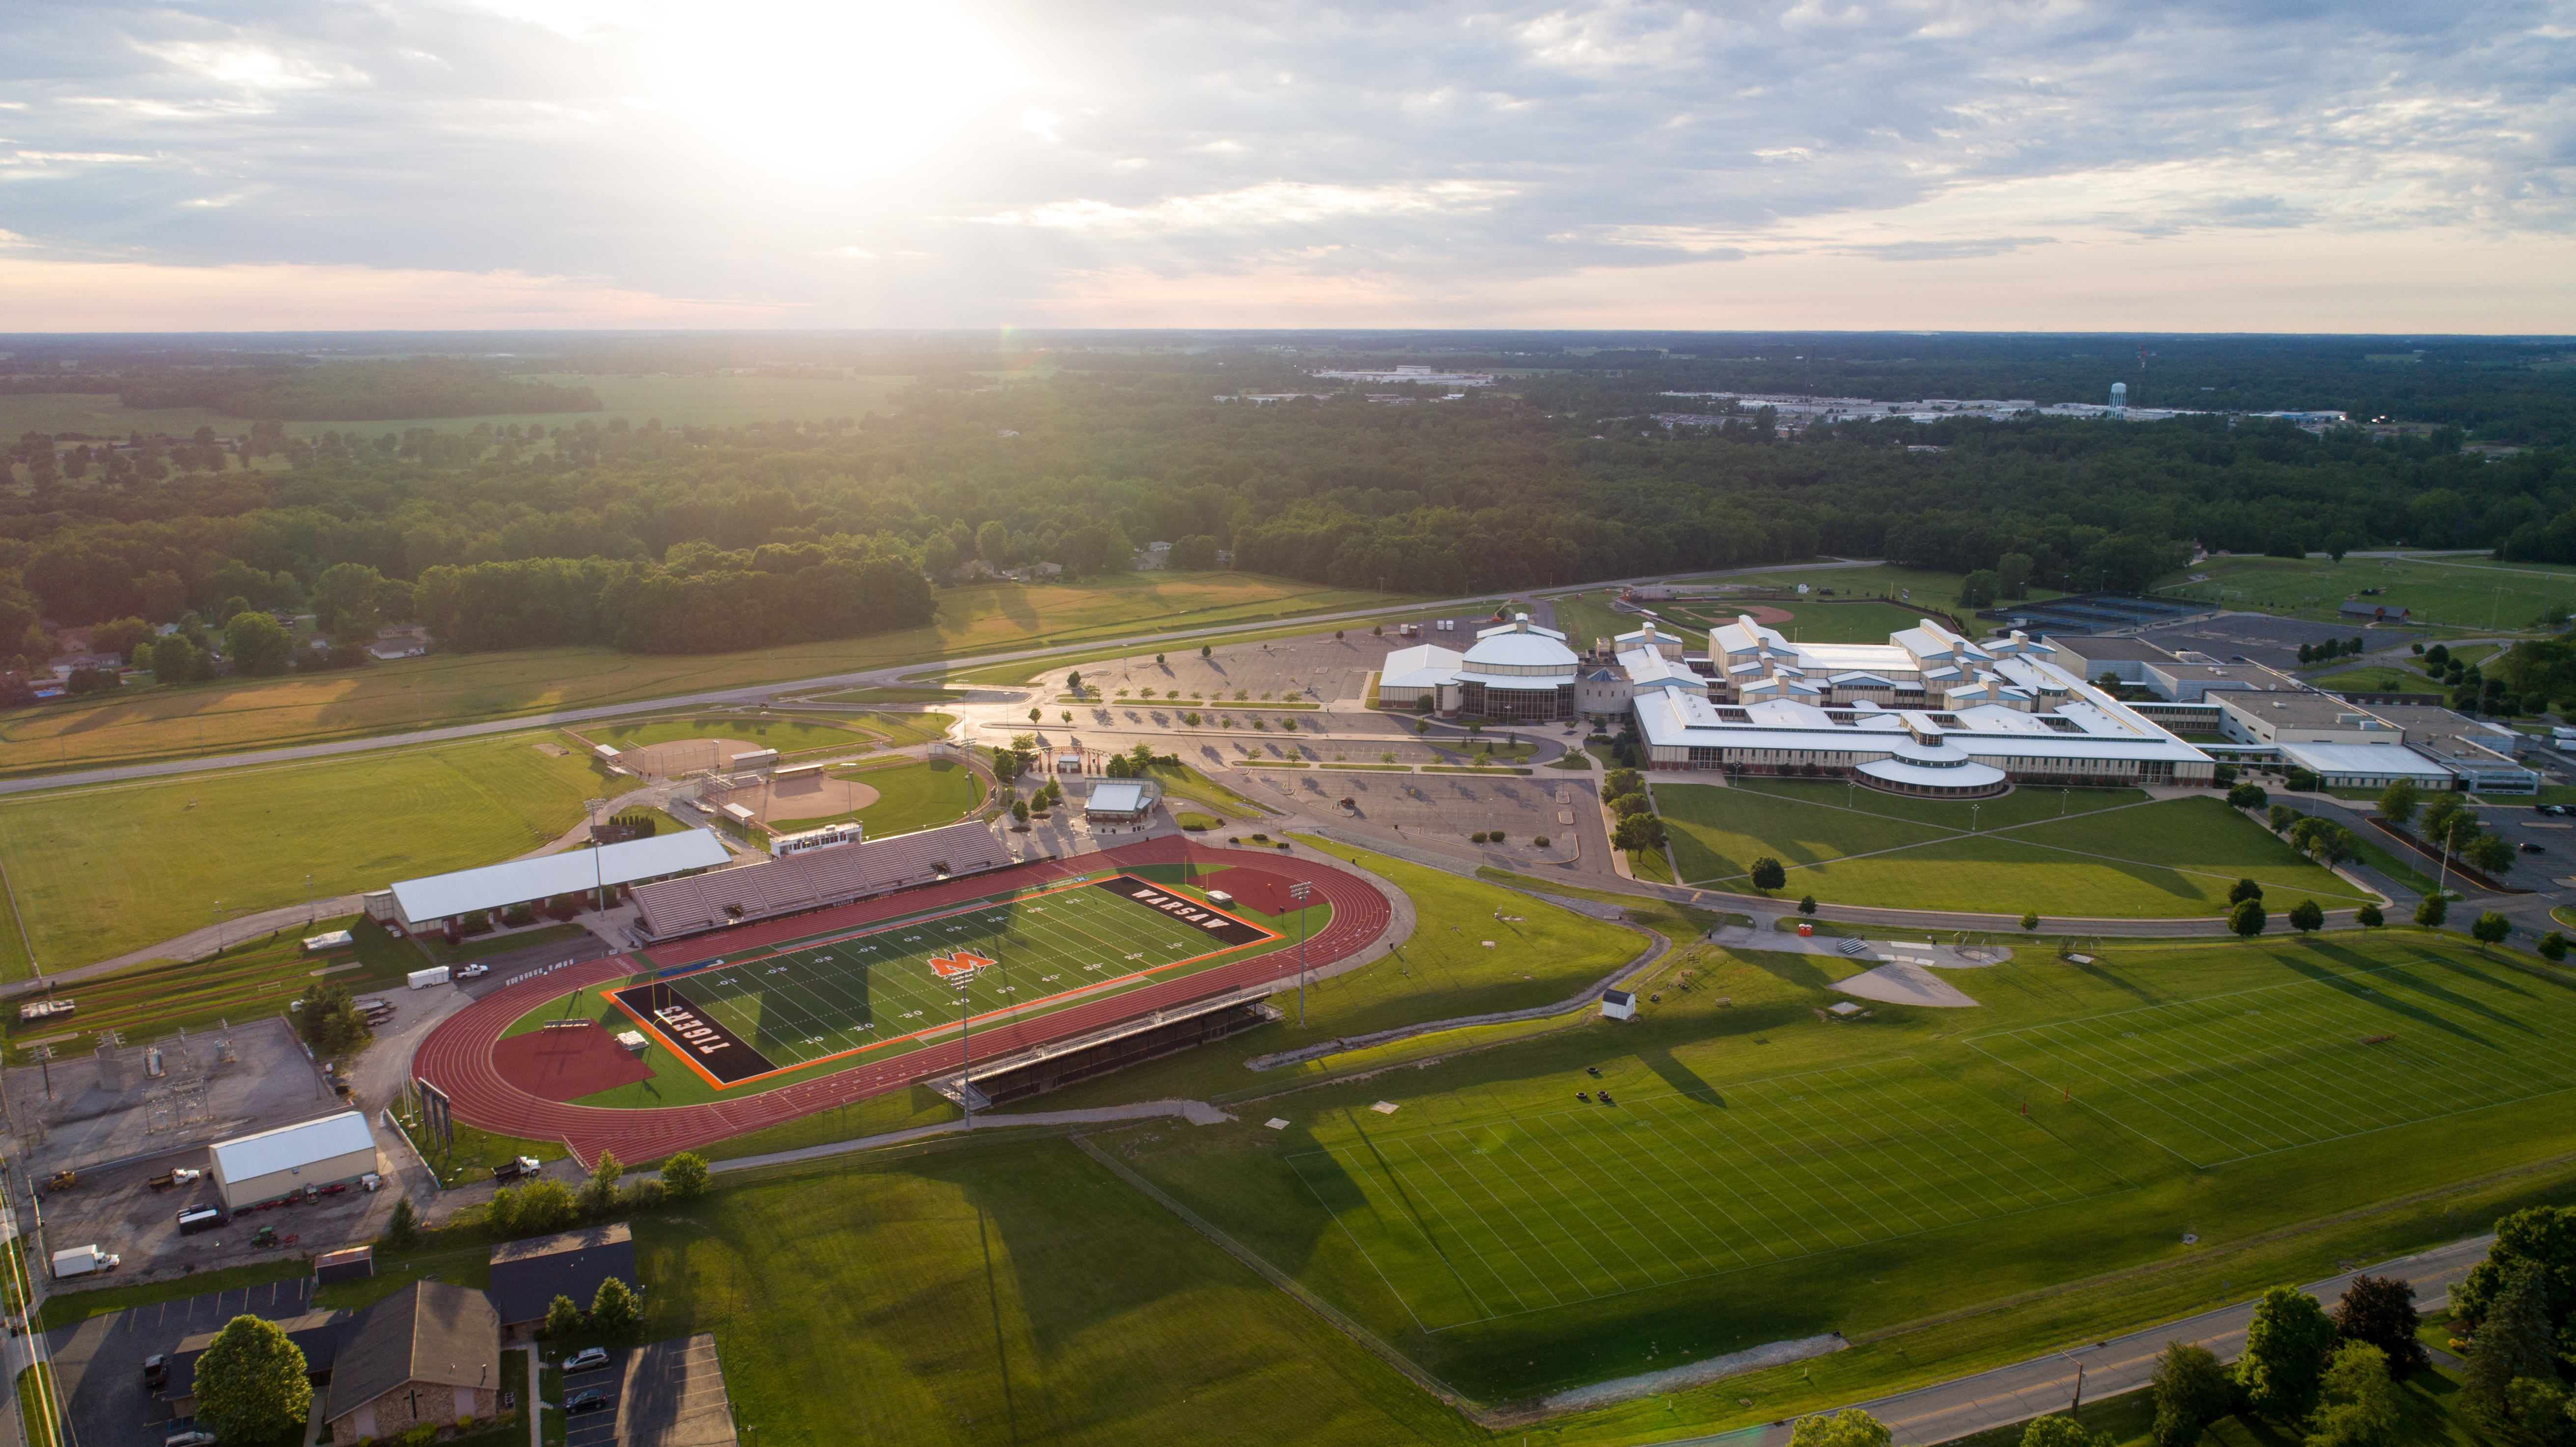 WELCOME TO THE NEW HOME FOR TIGER ATHLETICS